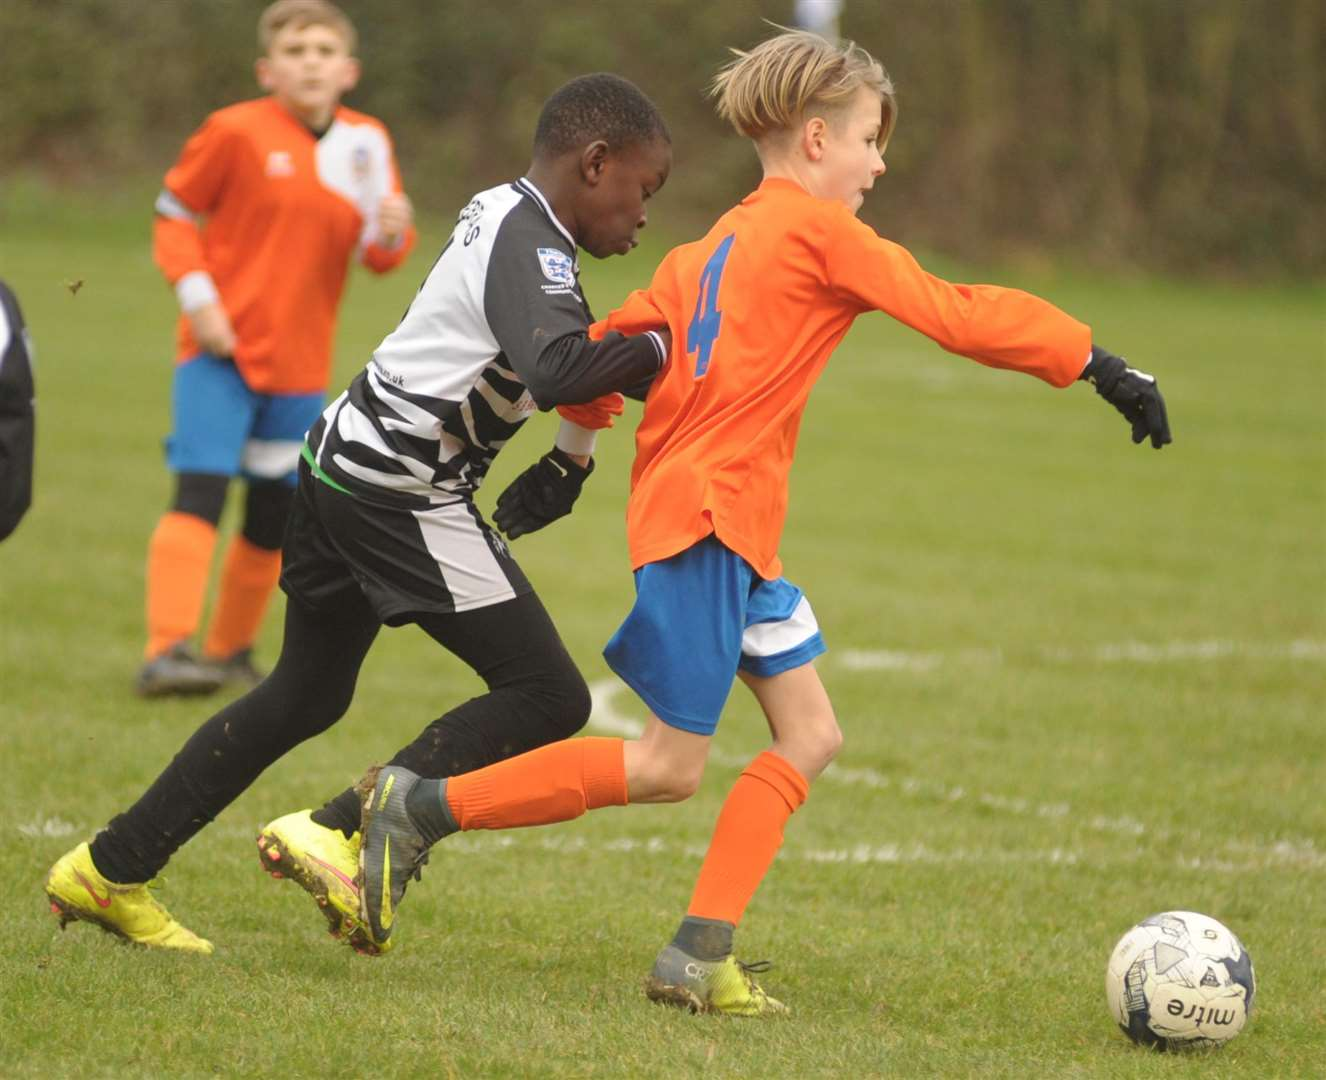 Milton & Fulston United under-11s stick with Cuxton 91 Crusaders Picture: Steve Crispe